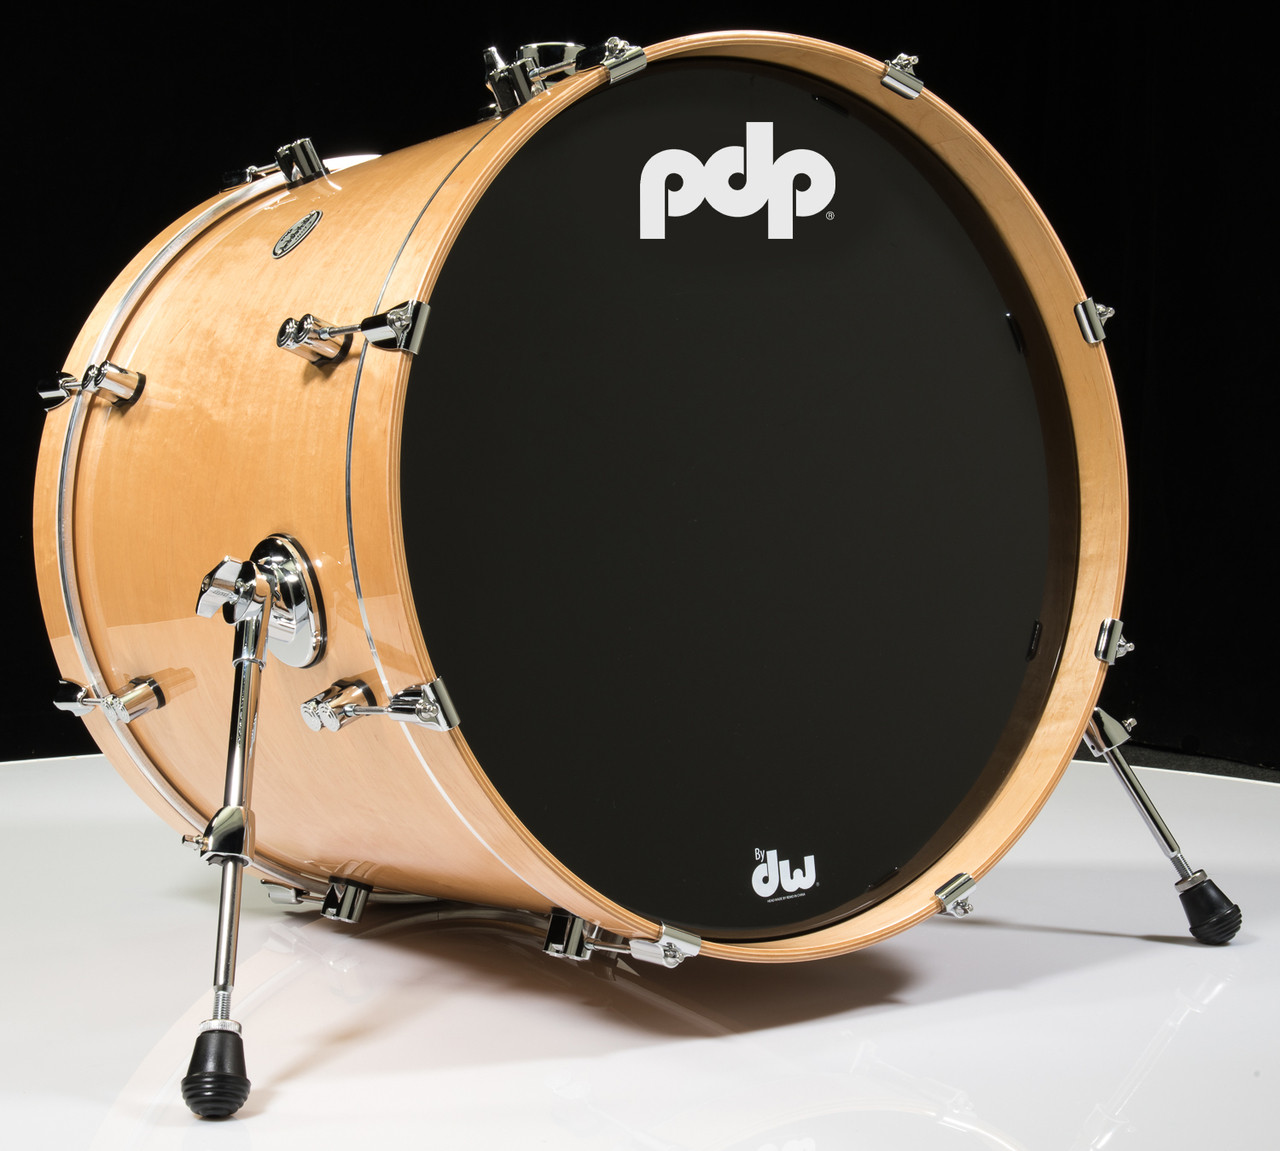 pdp concept maple natural bass drum 18x22. Black Bedroom Furniture Sets. Home Design Ideas